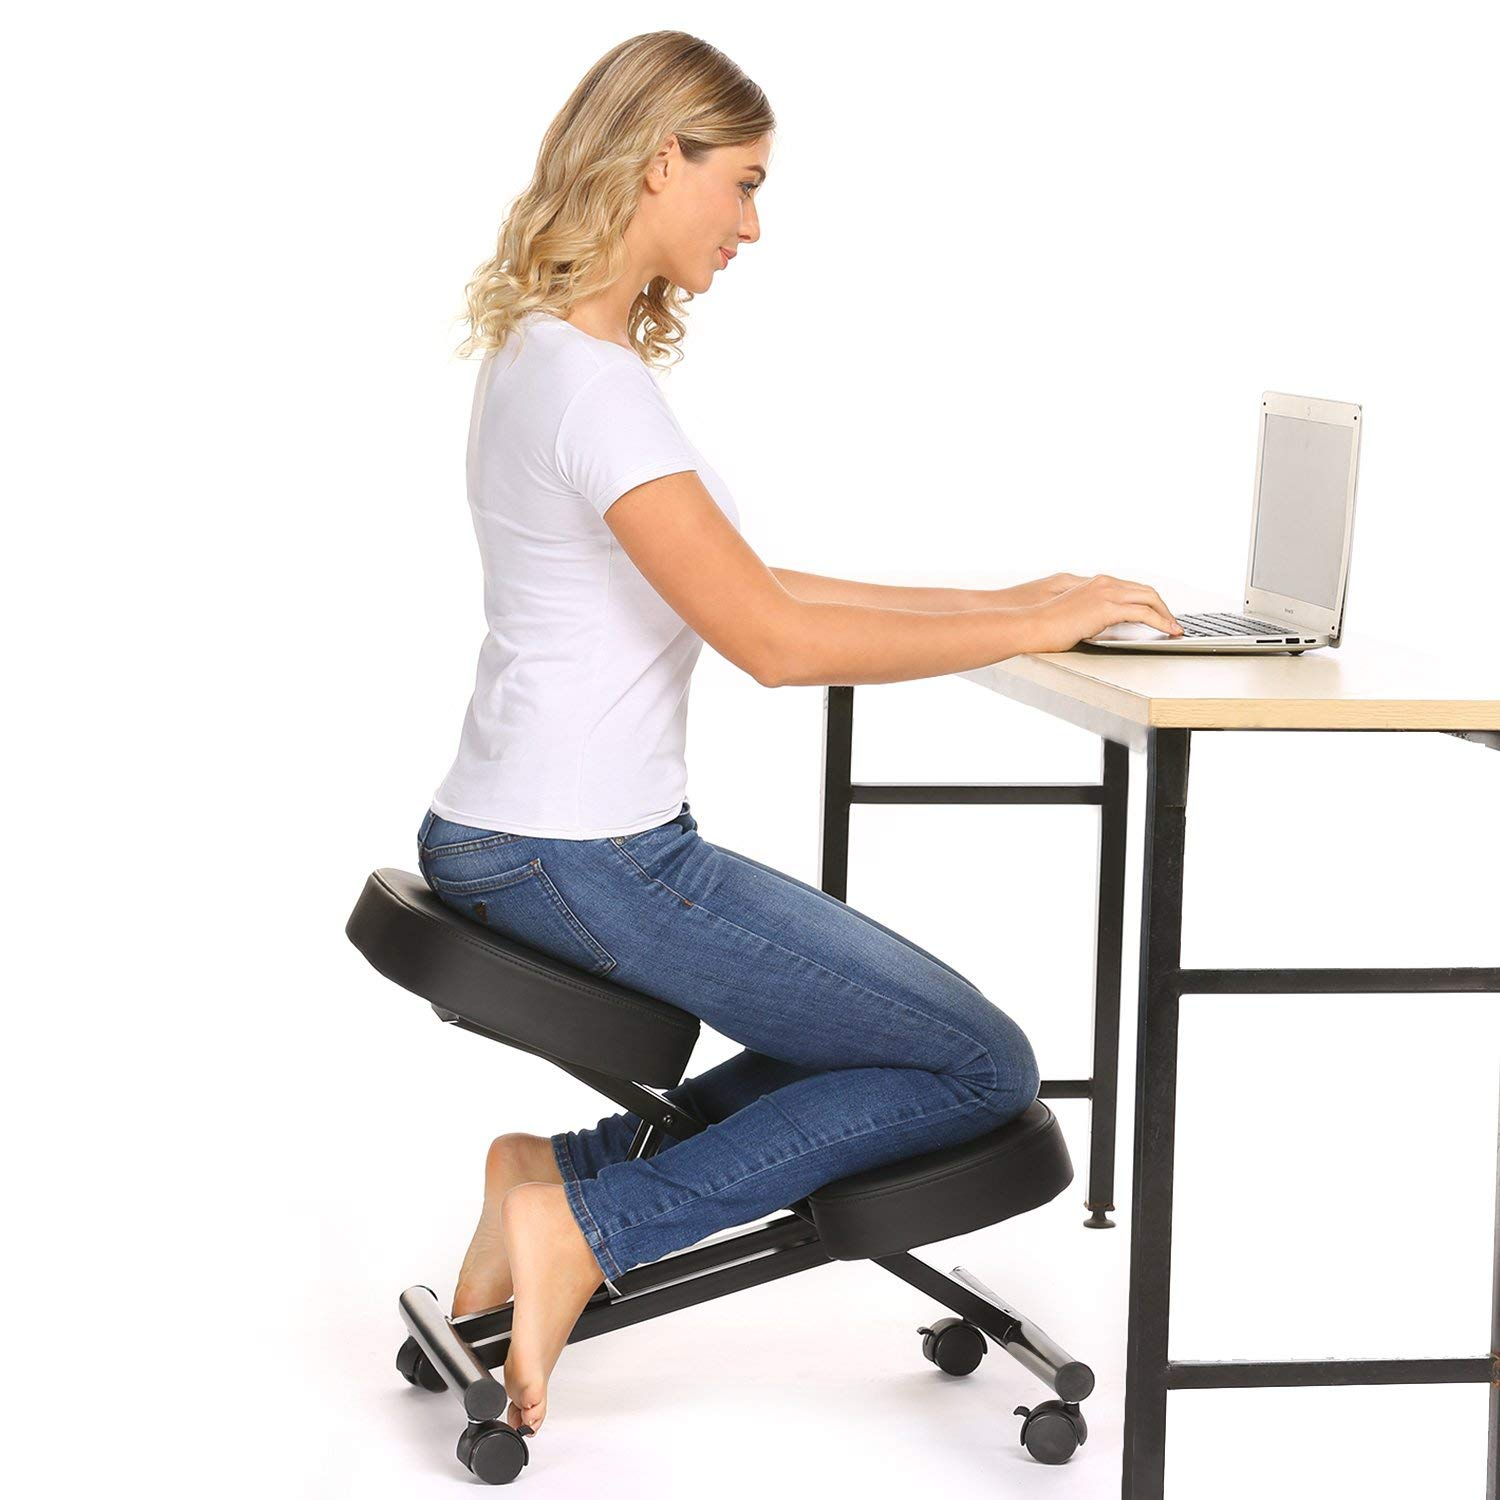 Papafix Ergonomic Kneeling Chair - Faux Leather - Thick Comfortable Moulded Foam Cushions - Smooth Gliding Casters & Brake Casters,Adjustable Stool for Home & Office